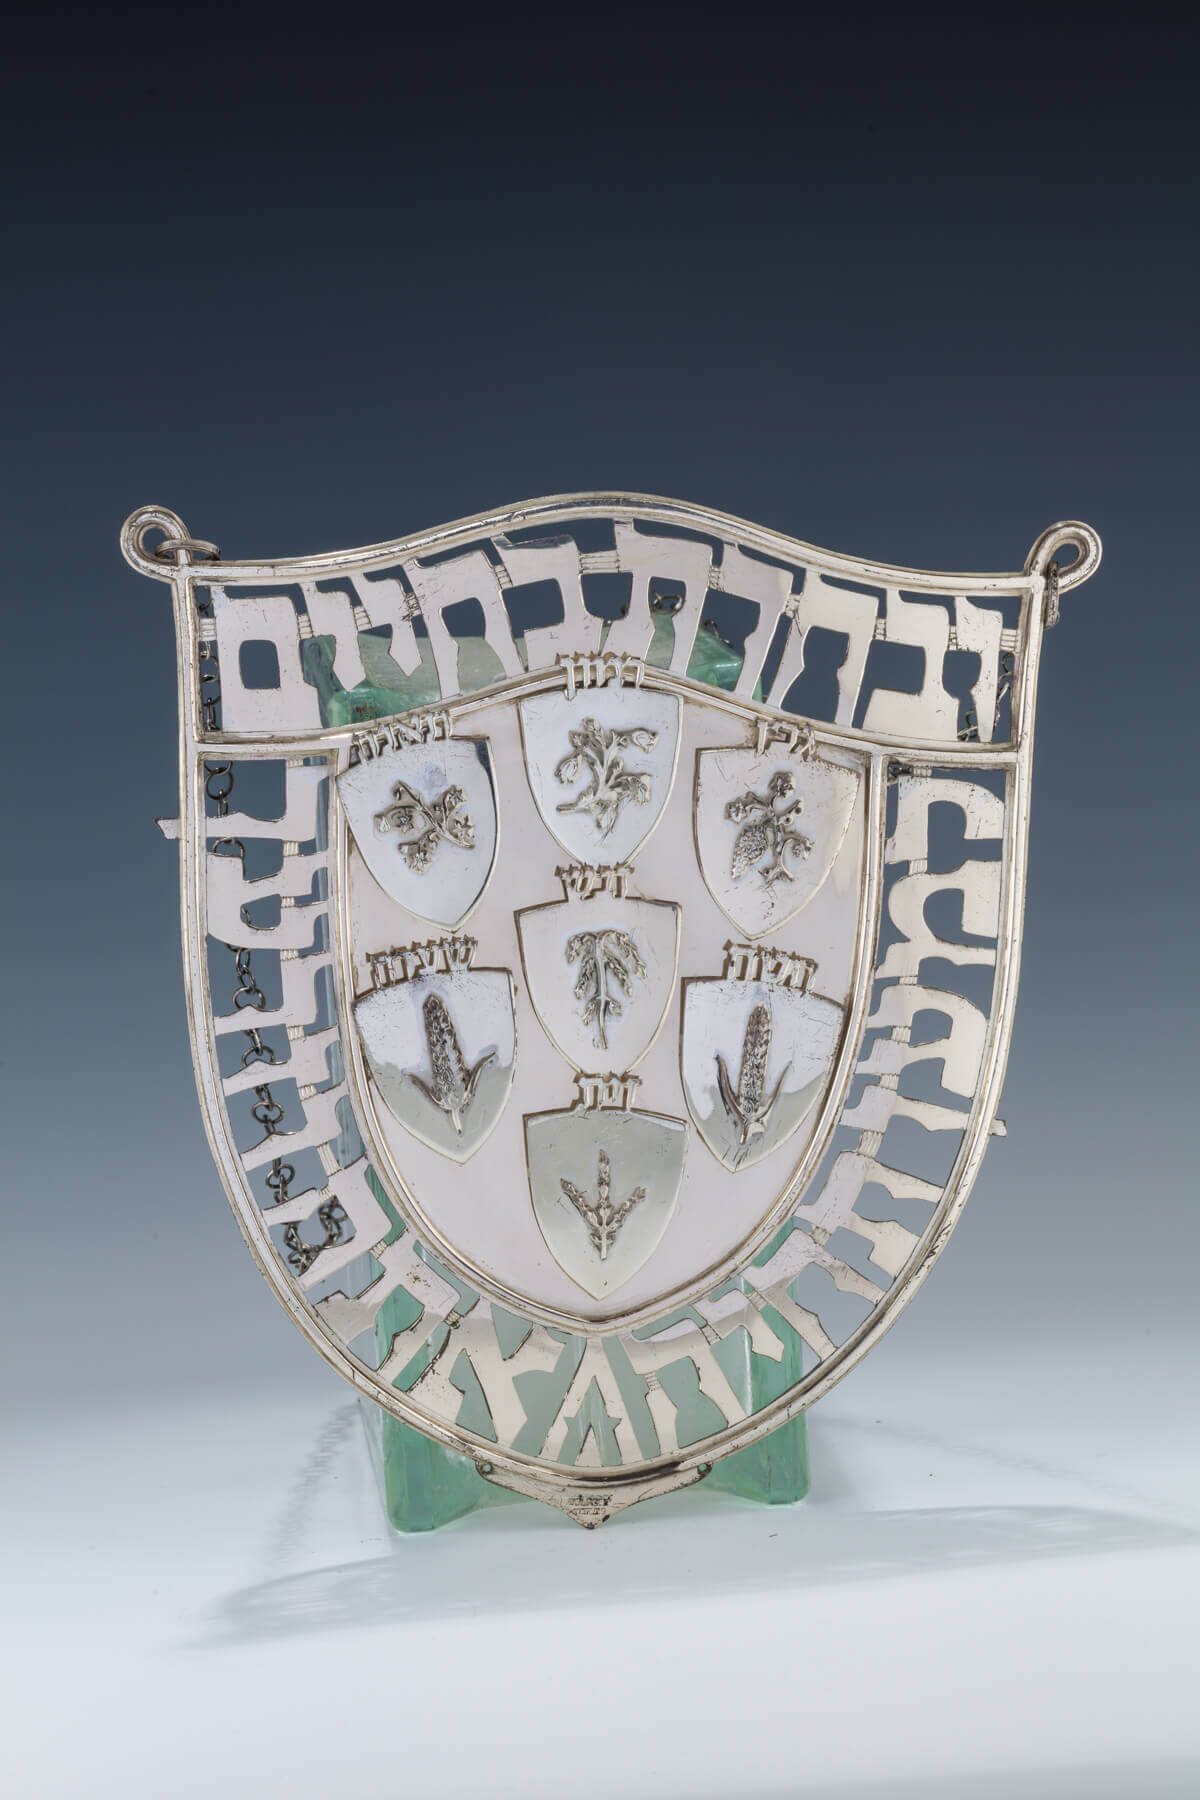 157. A LARGE STERLING SILVER TORAH SHIELD BY LUDWIG WOLPERT